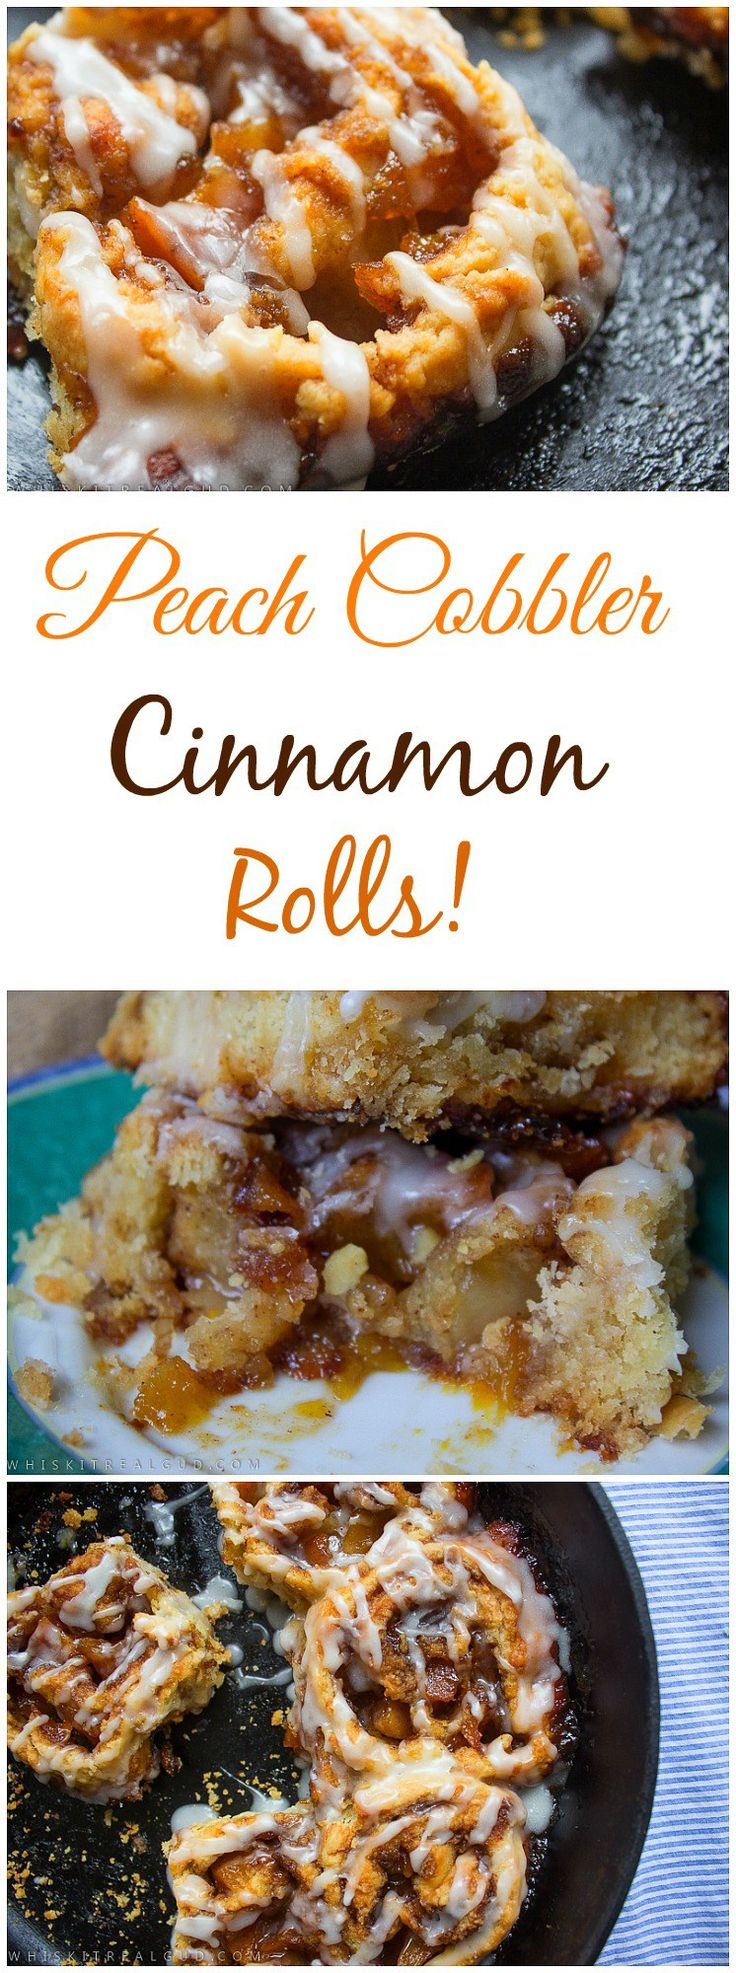 Delicate, buttery flaky warm rolls with chunks of peaches which are covered in brown sugar, warm spices and butter. A Cinnamon and sugar mix sprinkled on top then drizzled with peach glaze. Every year around this time I gotta have peach cobbler. I love it. ... #cinnamonrolls #cobbler #peachcobbler